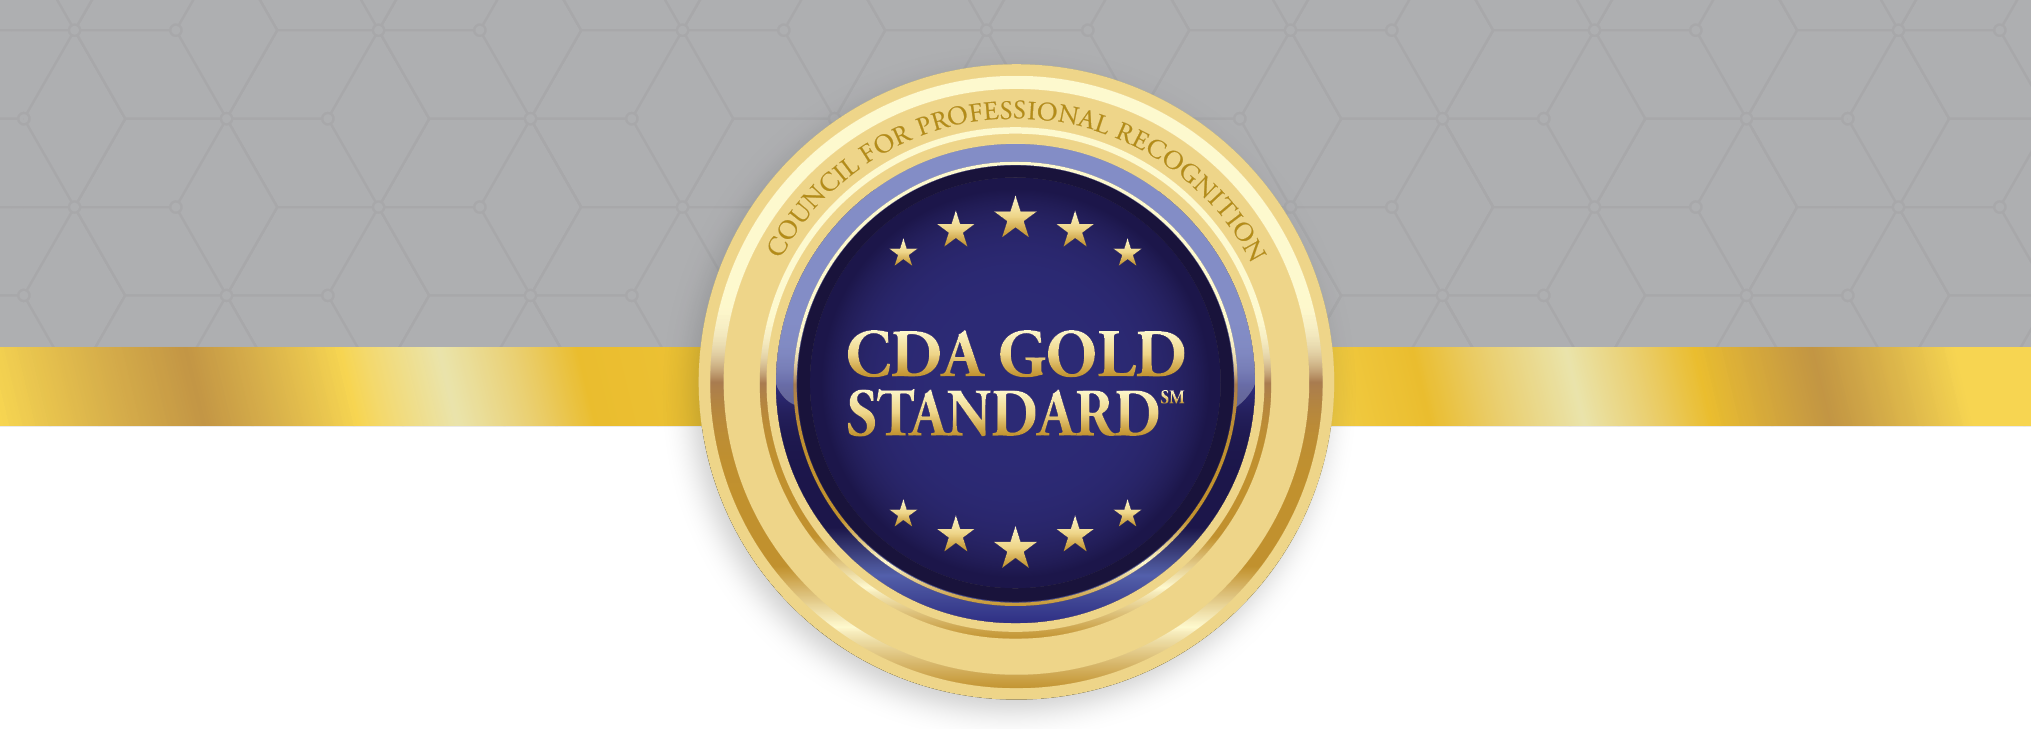 Find Cda Training Council For Professional Recognition